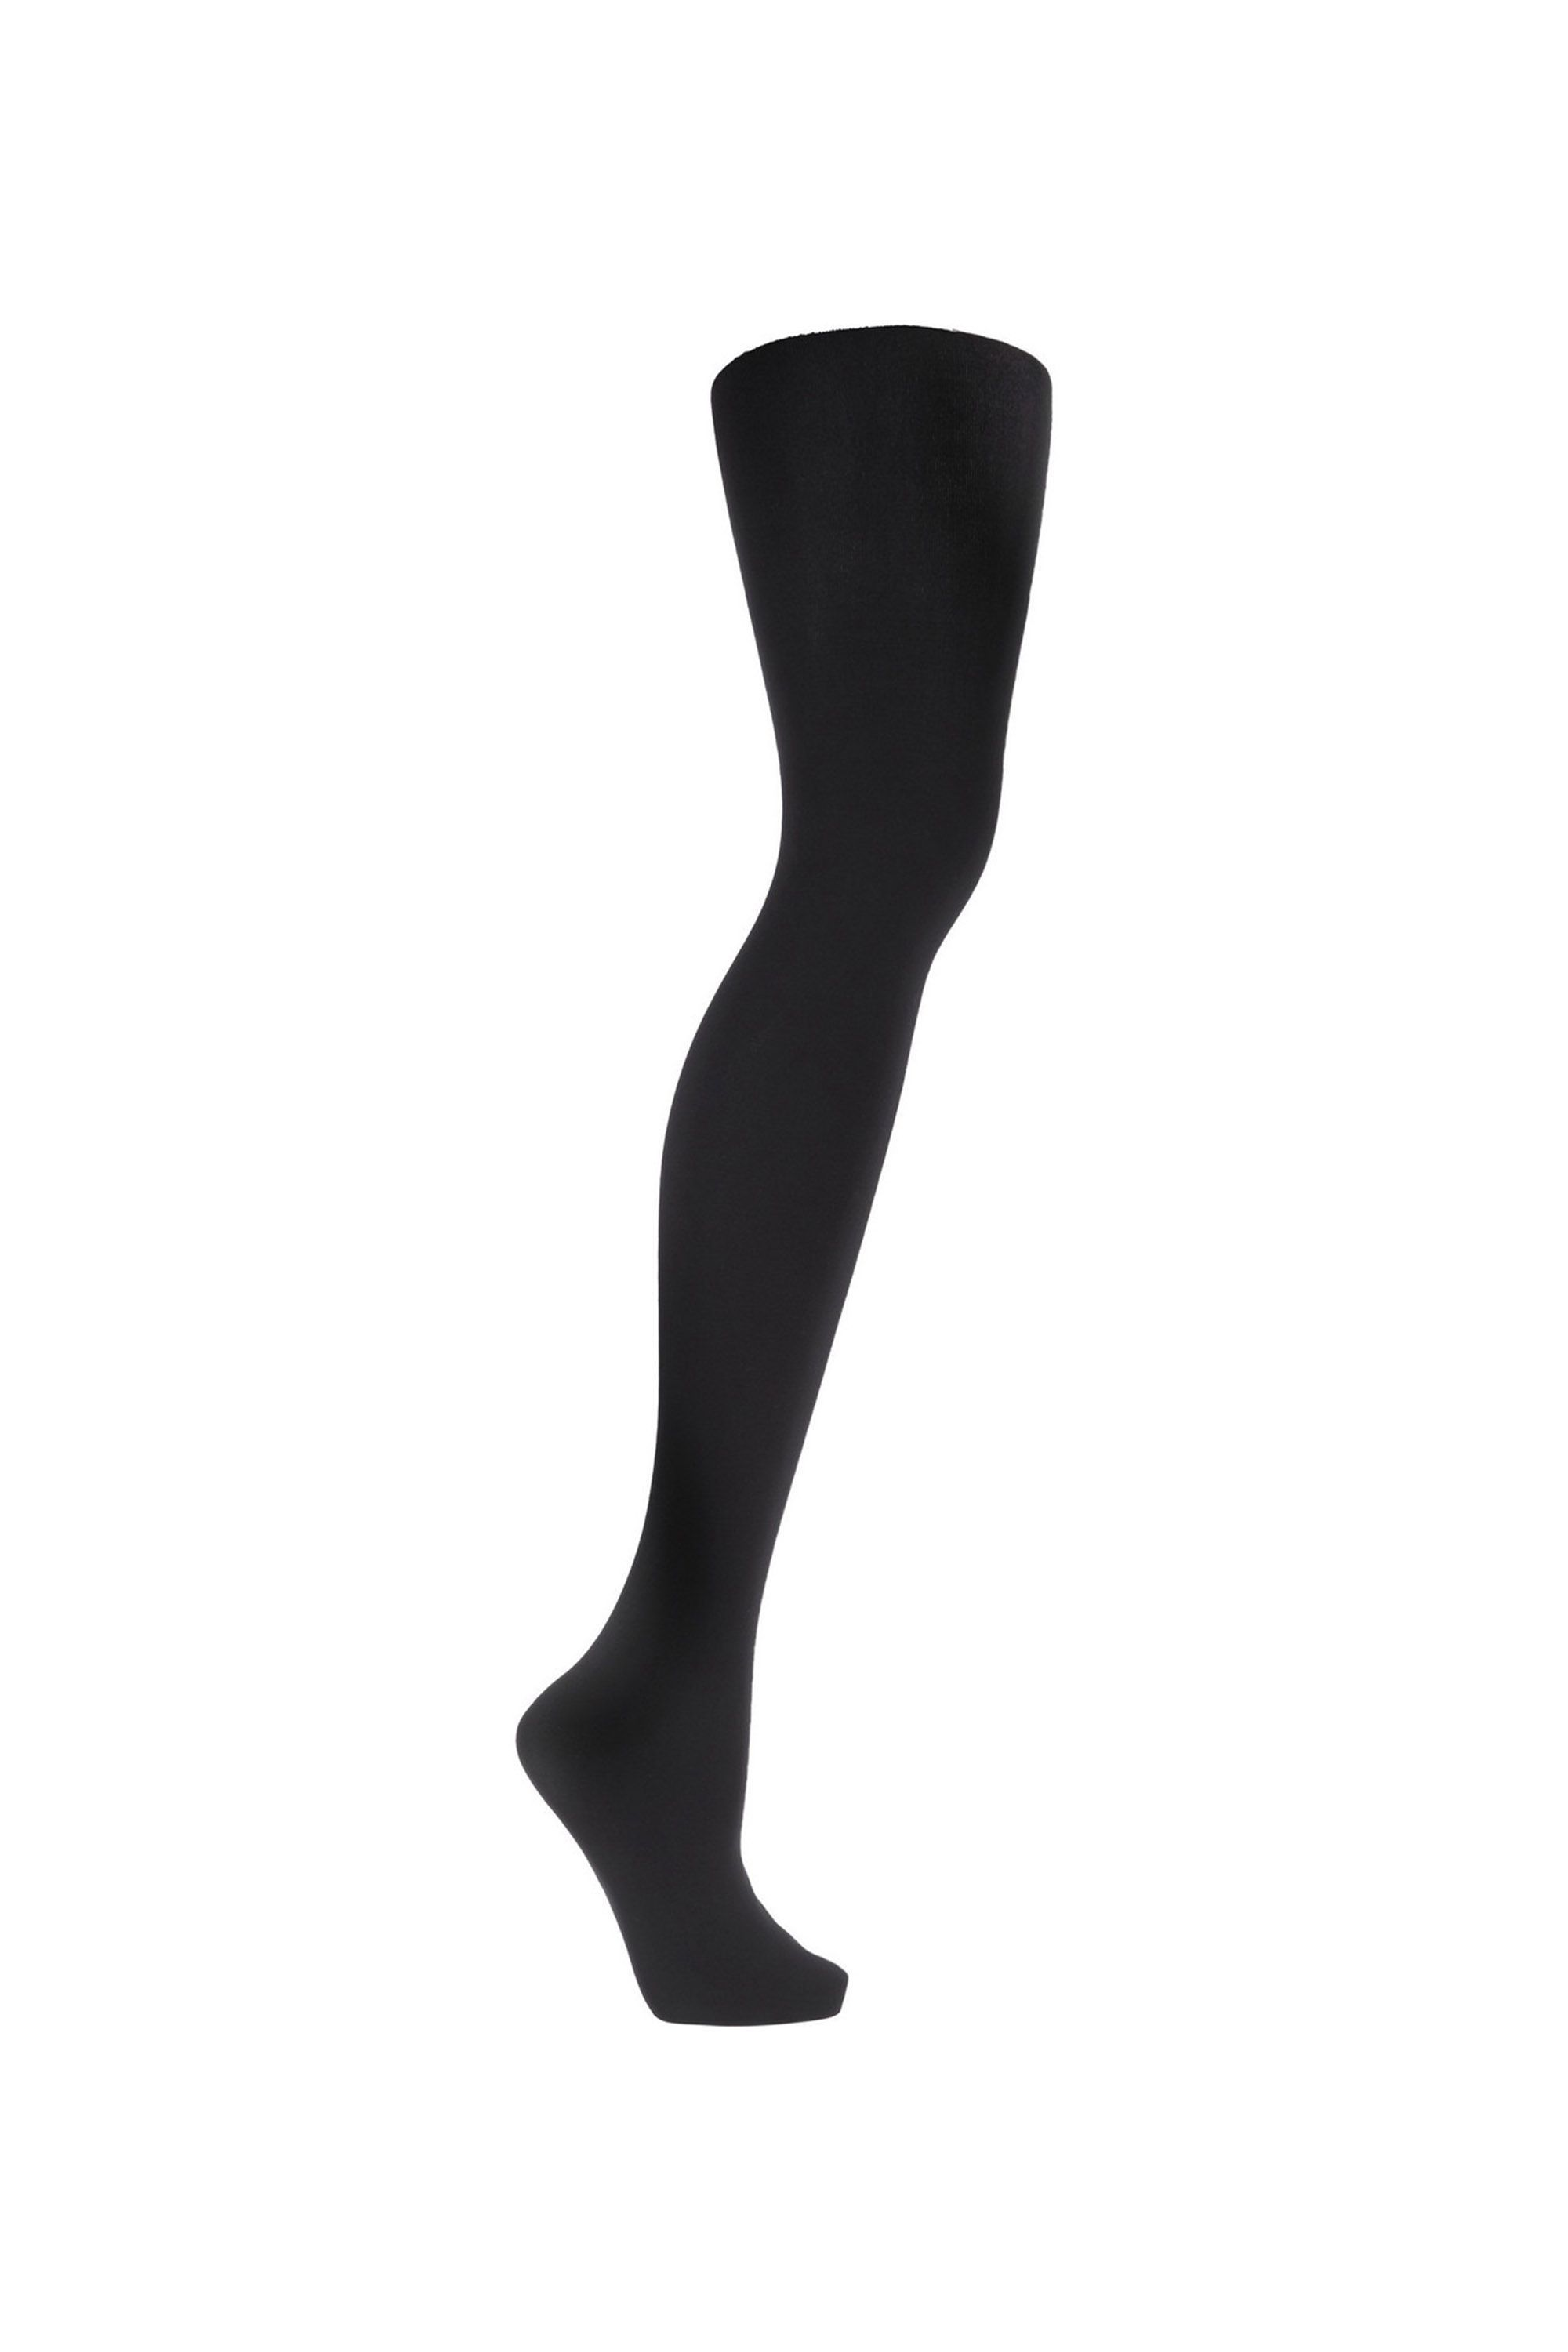 766d4abbffde3 Best Black Tights for Winter and Cold Weather